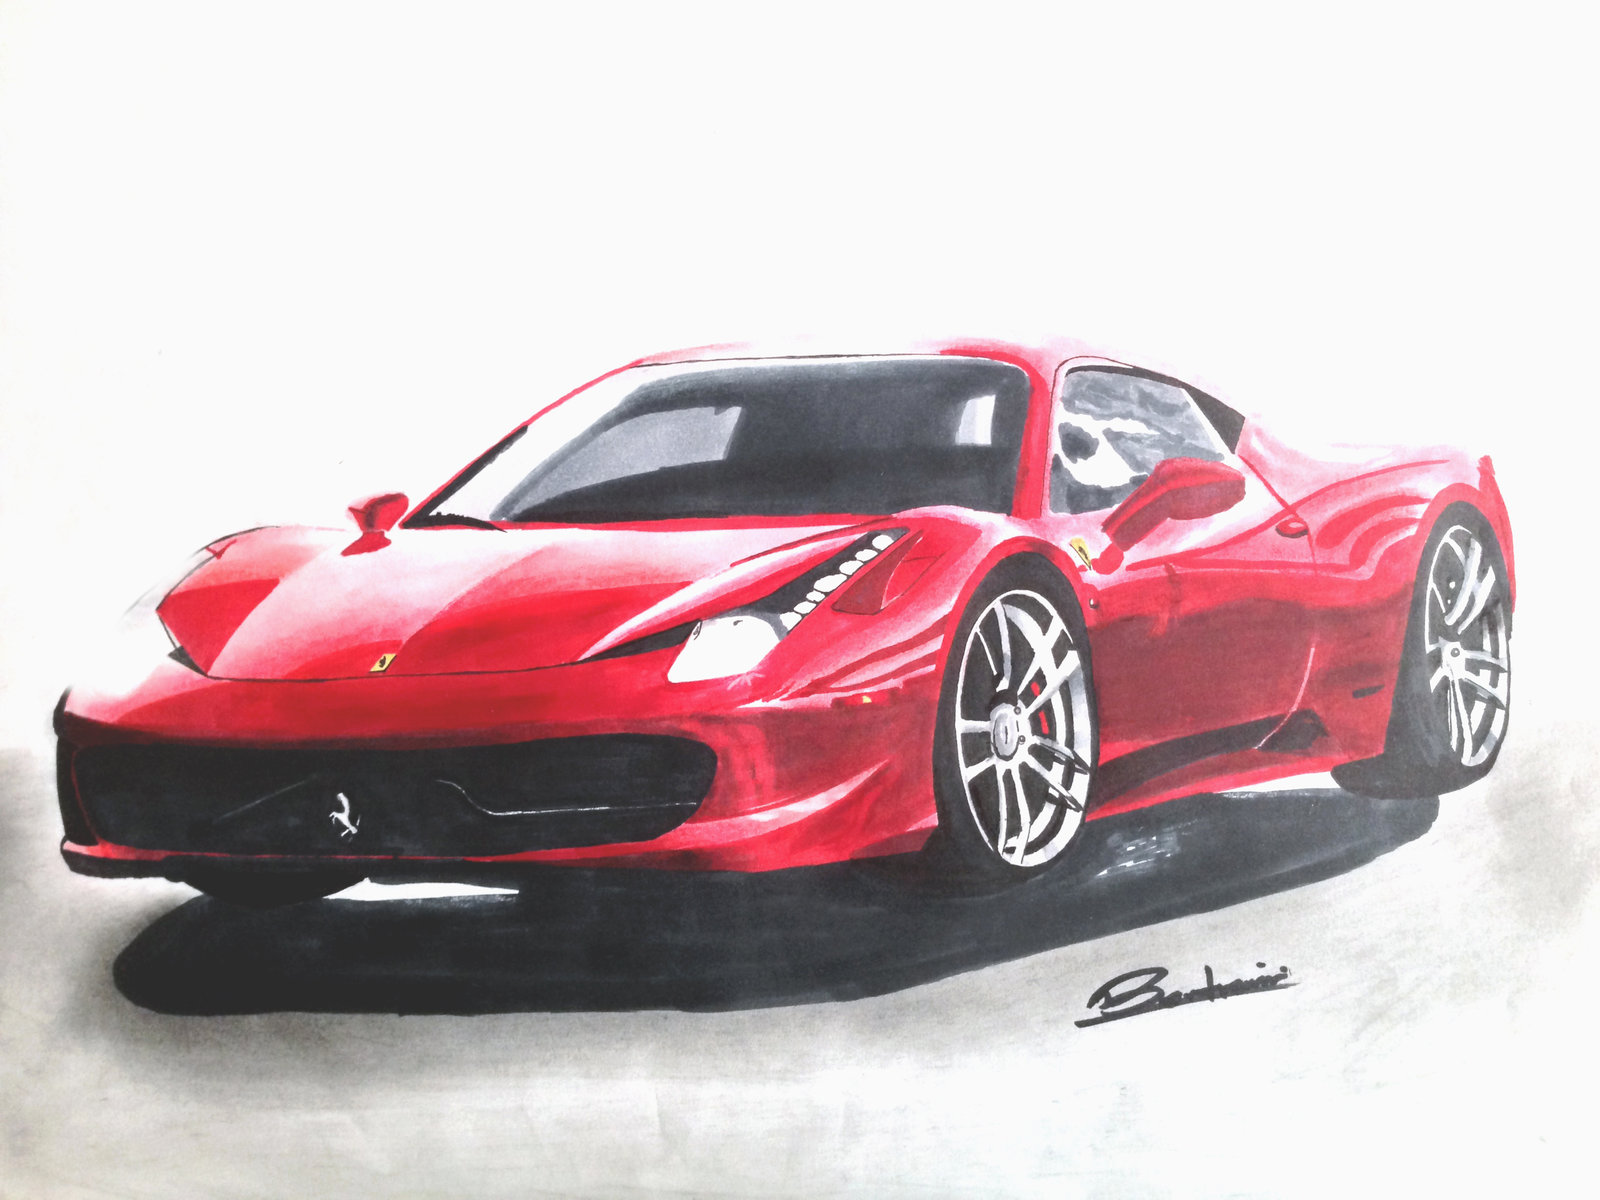 Drawn ferarri italia Ferrari Ferrari by by on